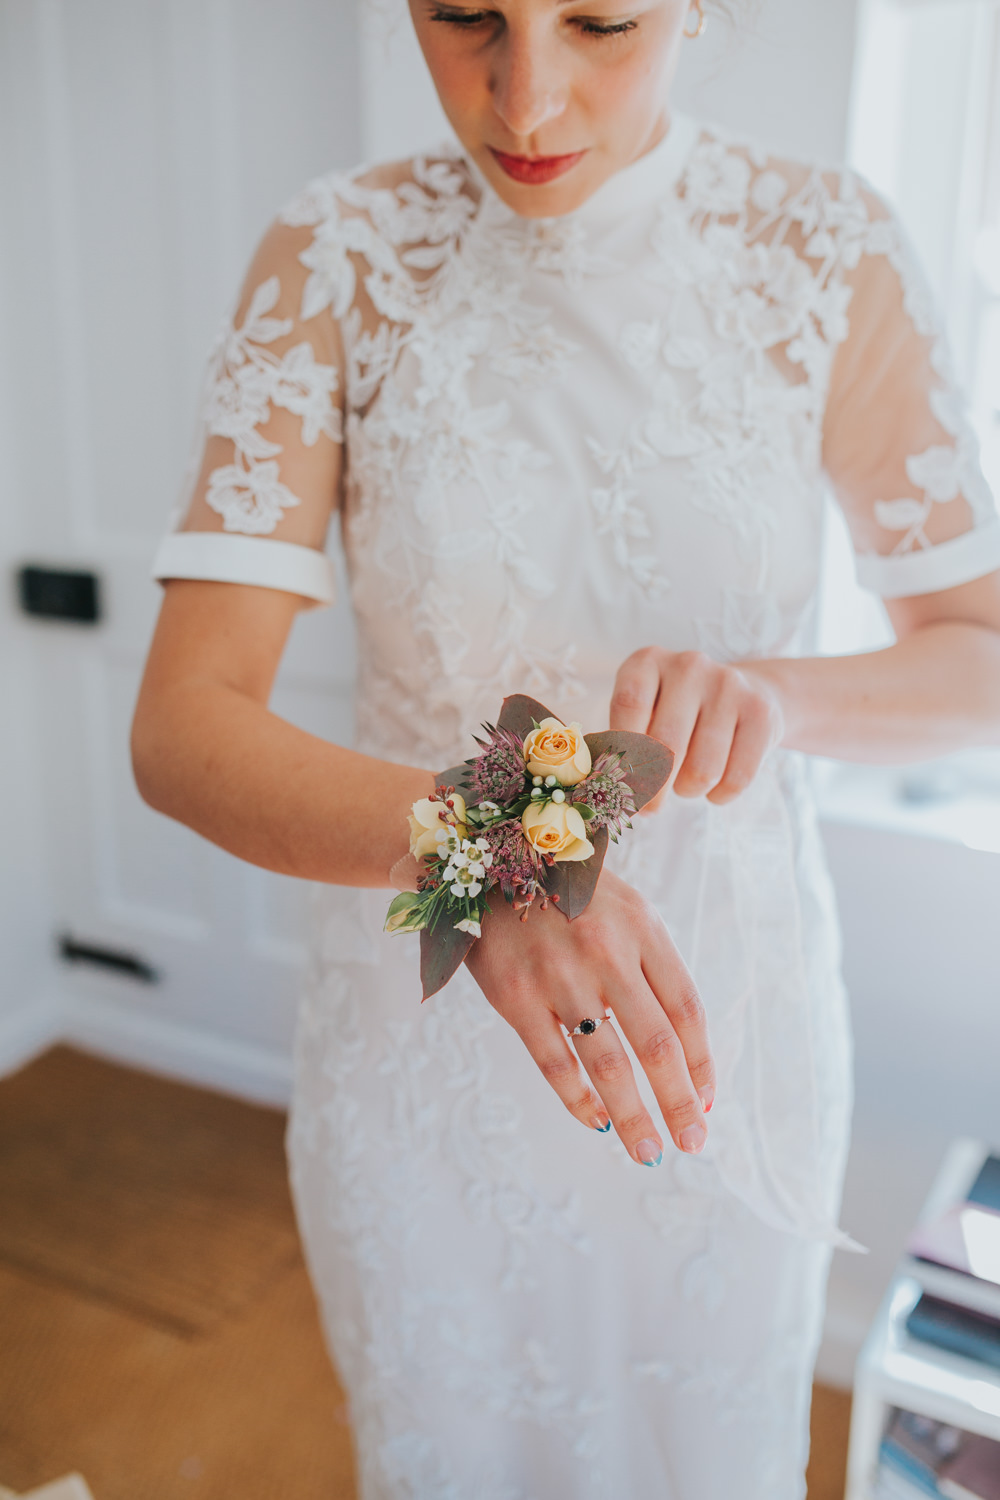 Dress Gown Bride Bridal Lace Sleeves Phase Eight Personalised Embroidered Wrist Corsage Thorpeness Country Club Wedding Charlotte Razzell Photography